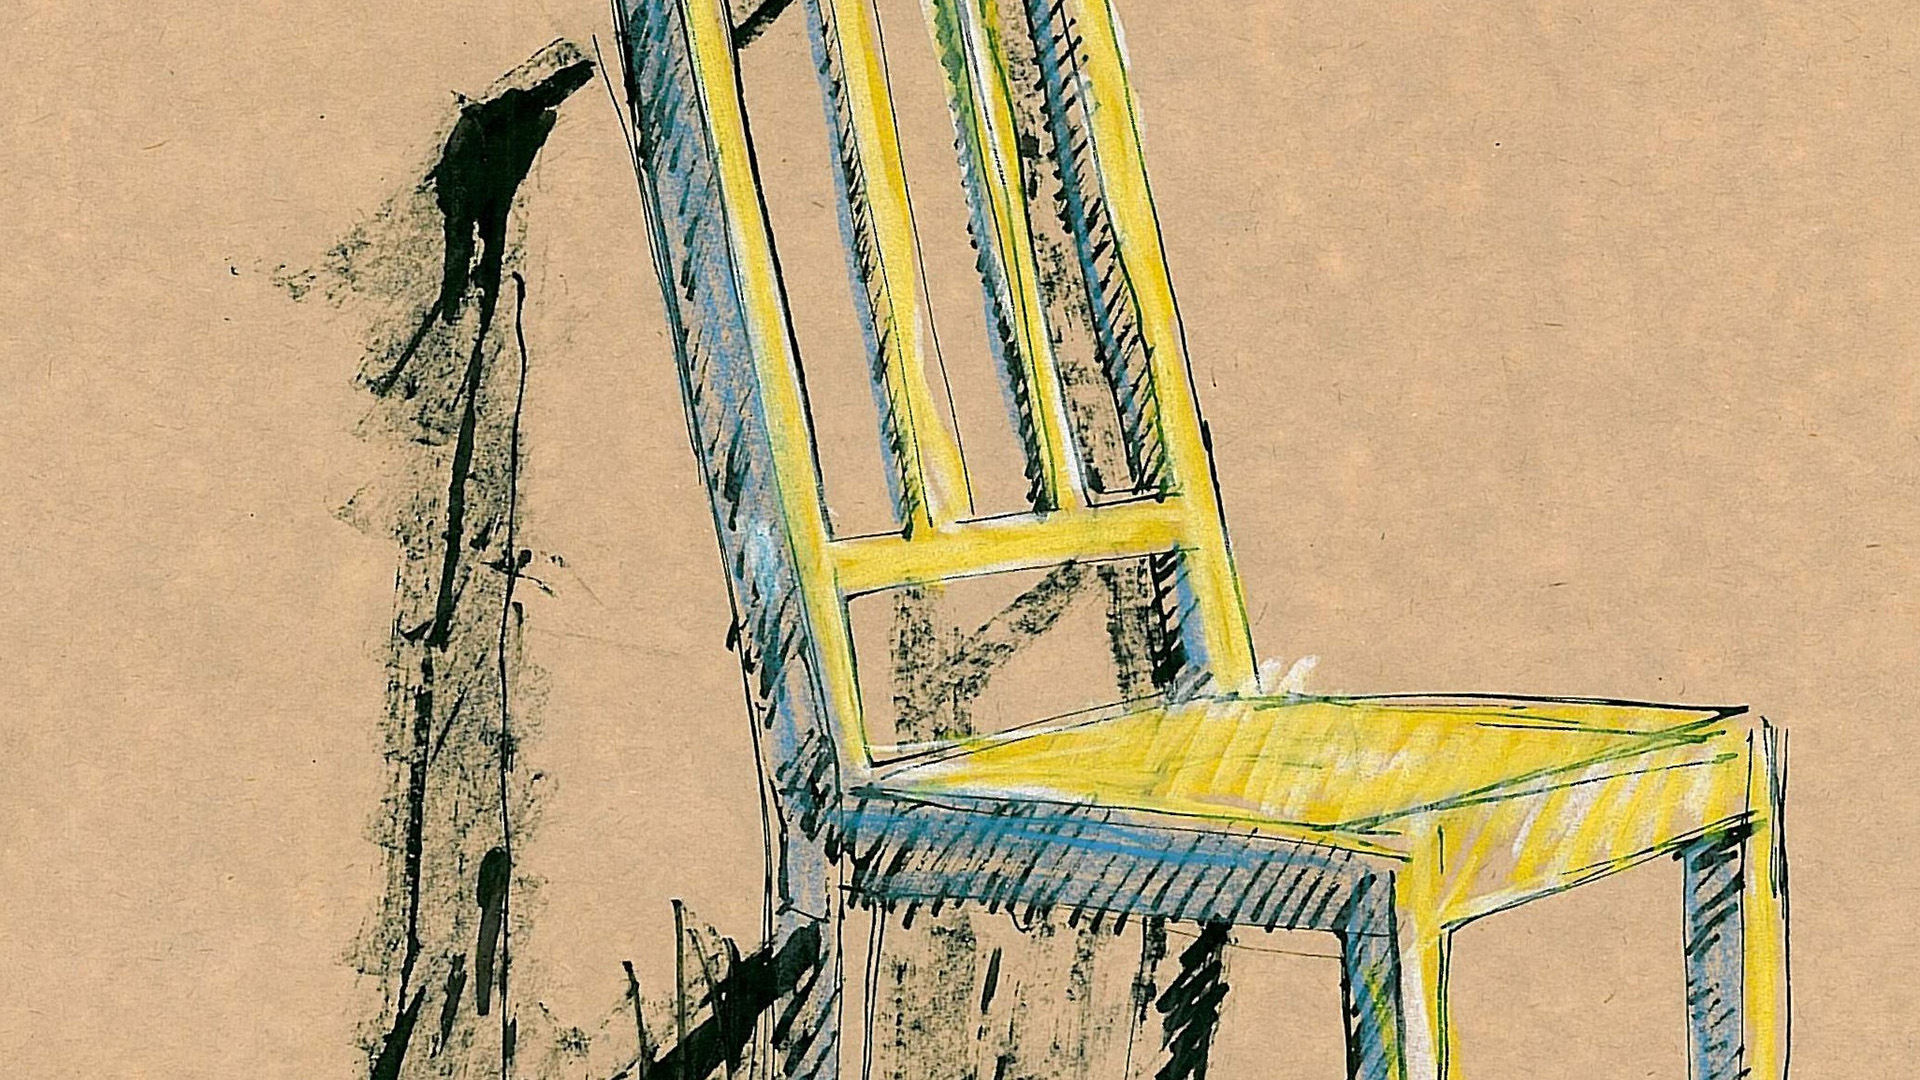 3. Michael Armstrong, Chair, 2010 (#61 Chair, blue,yellow,green&b&W 30x45cm) crop